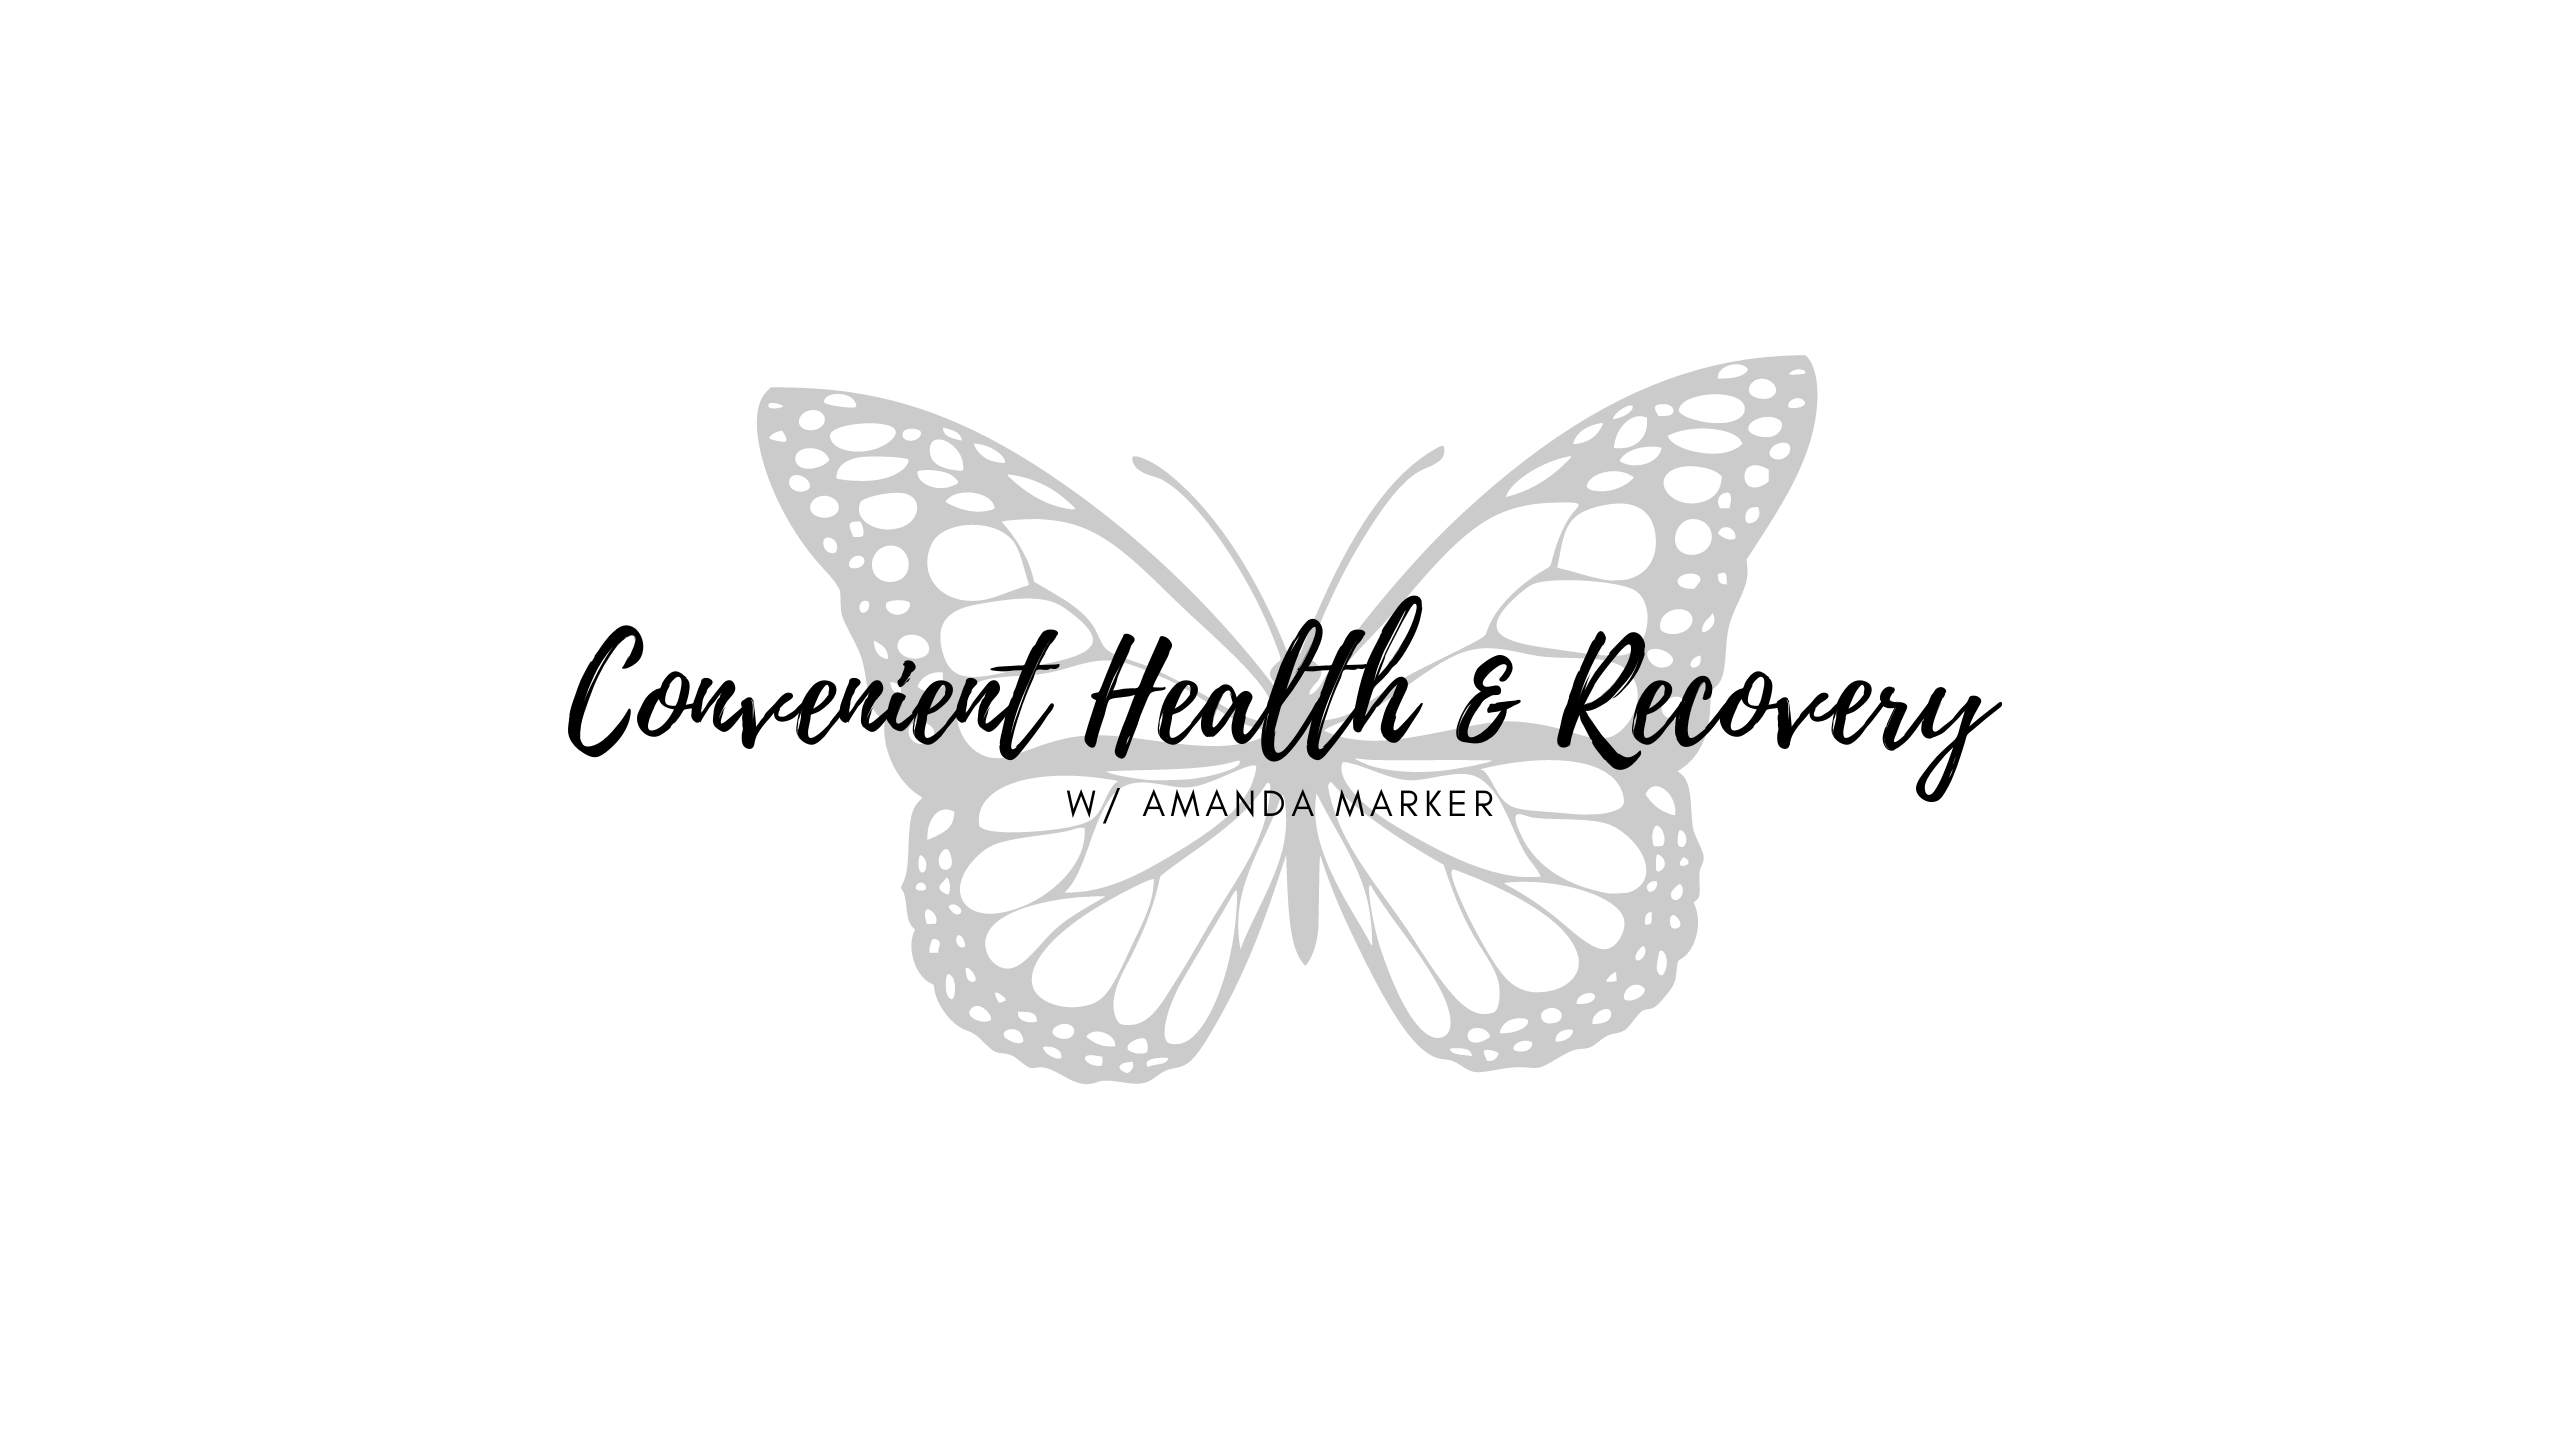 Convenient Health & Recovery